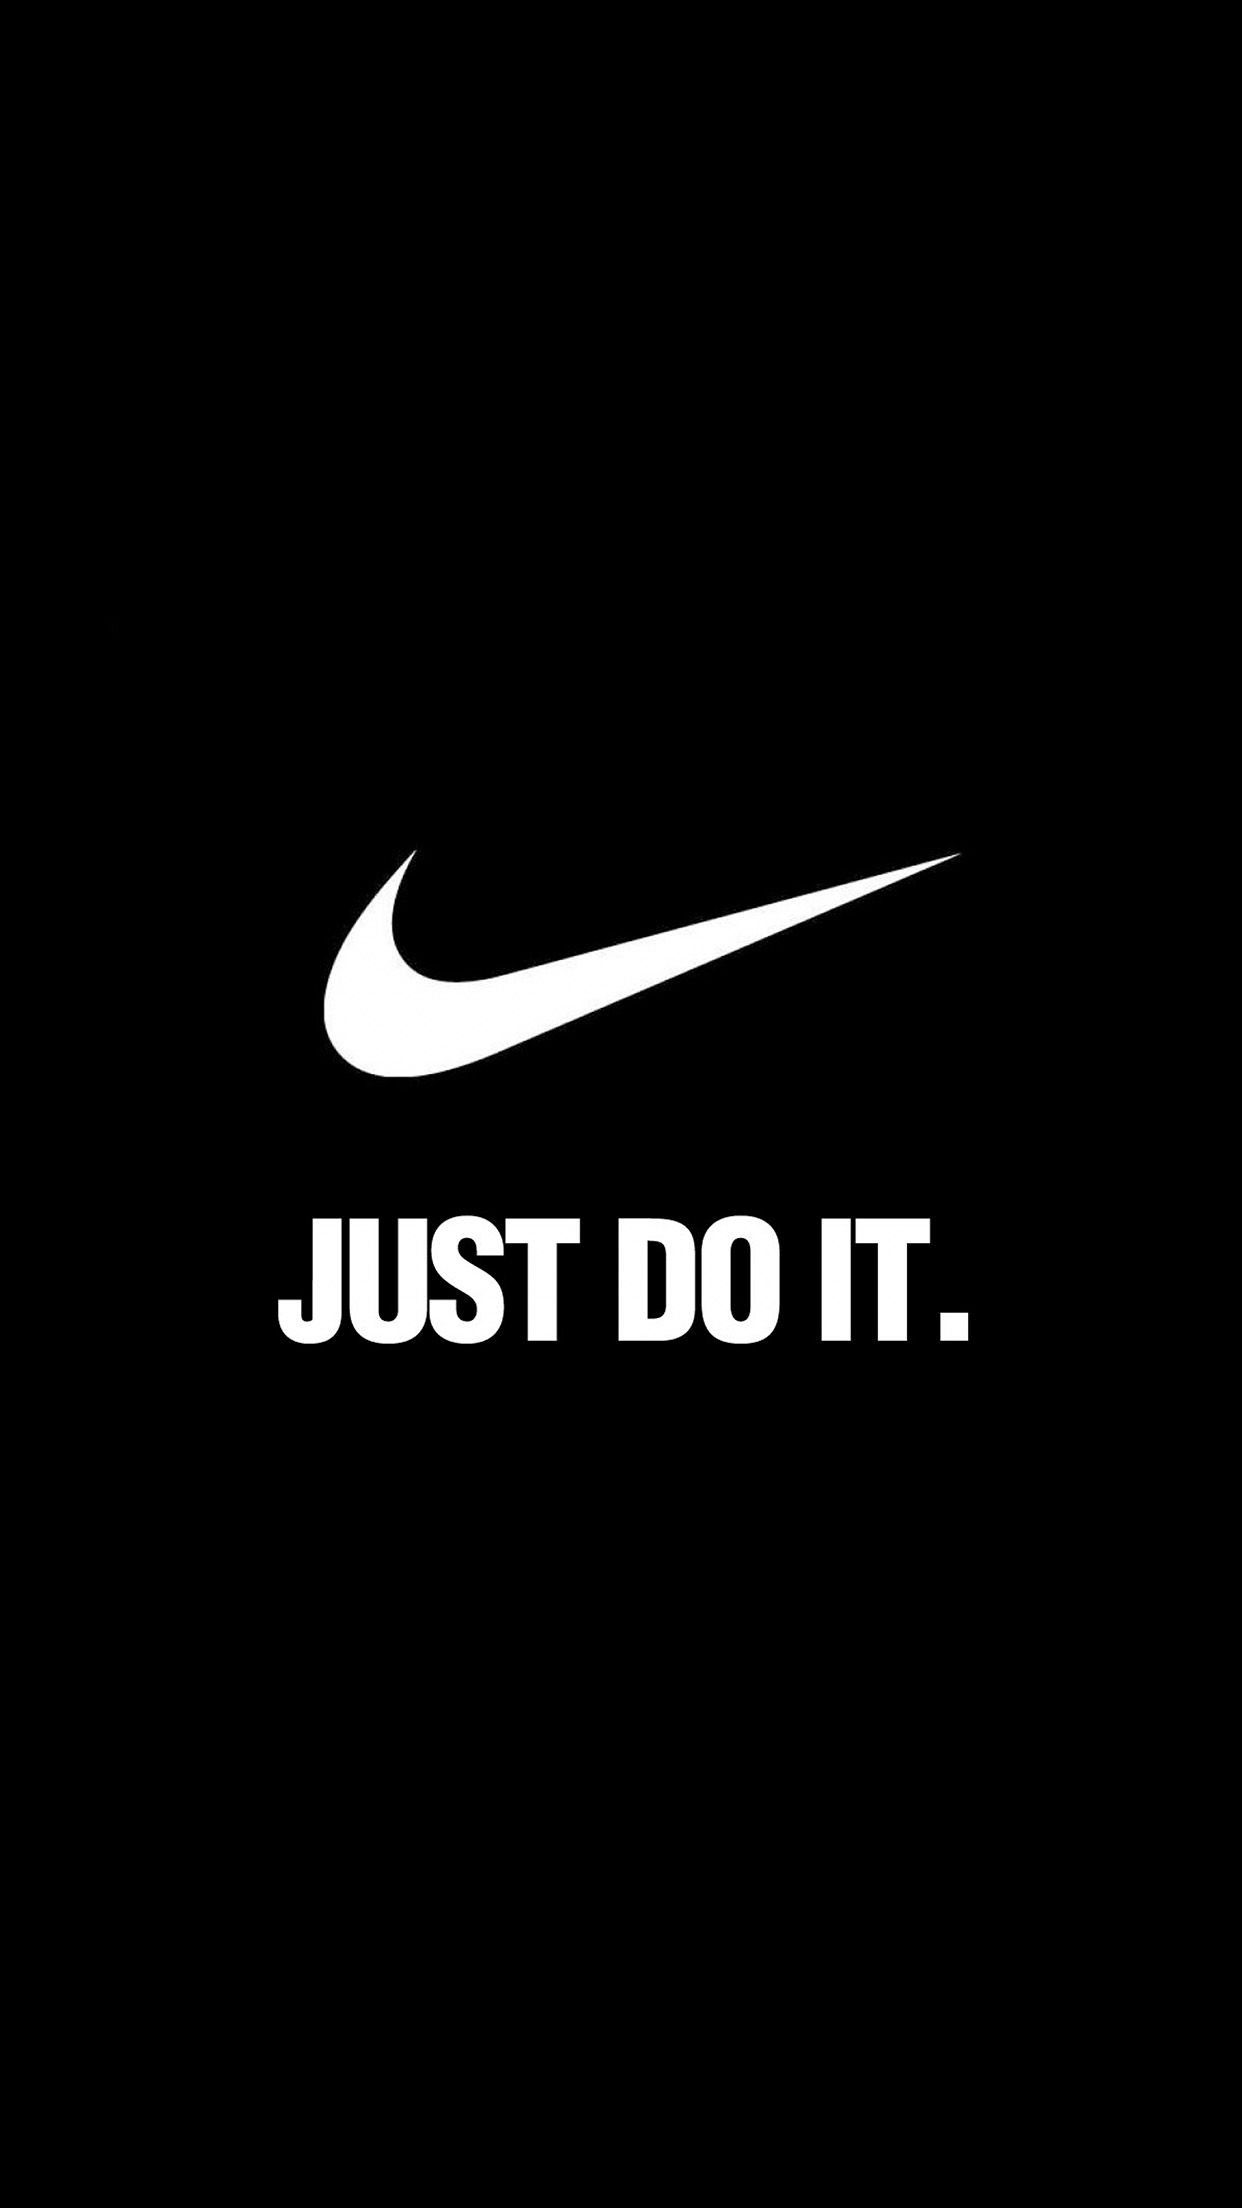 10 Most Popular Just Do It Iphone Wallpaper FULL HD 1920×1080 For PC Desktop